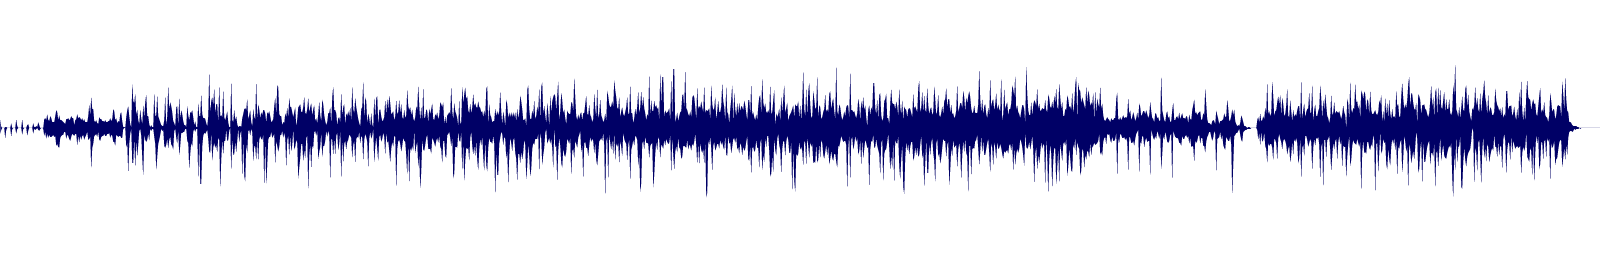 waveform of track #108340